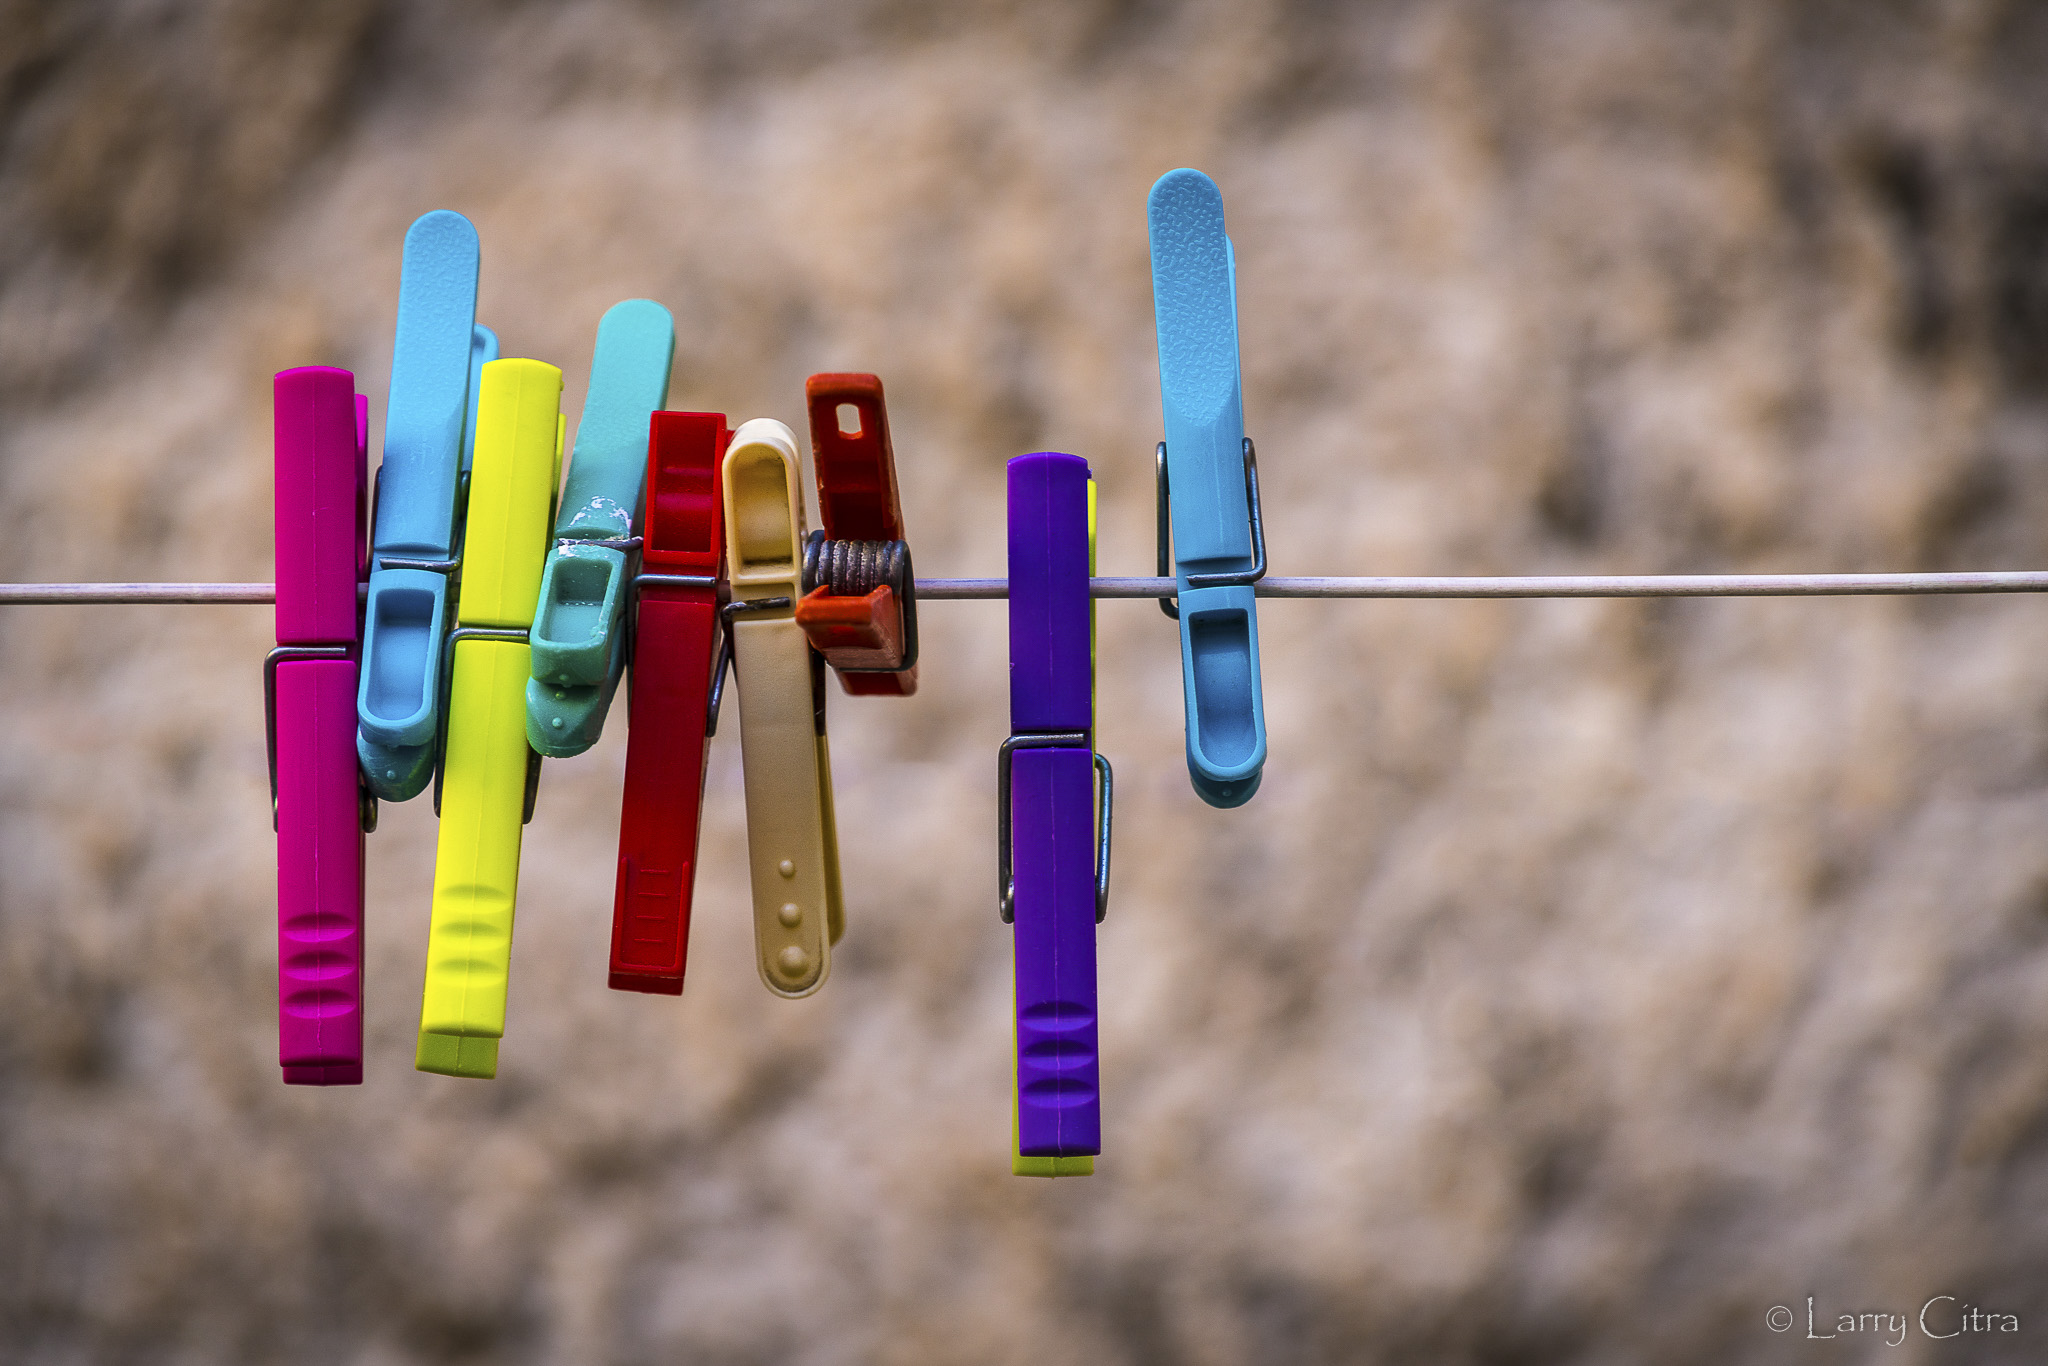 Larry Citra © Clothes Pegs on Line, Provence, France